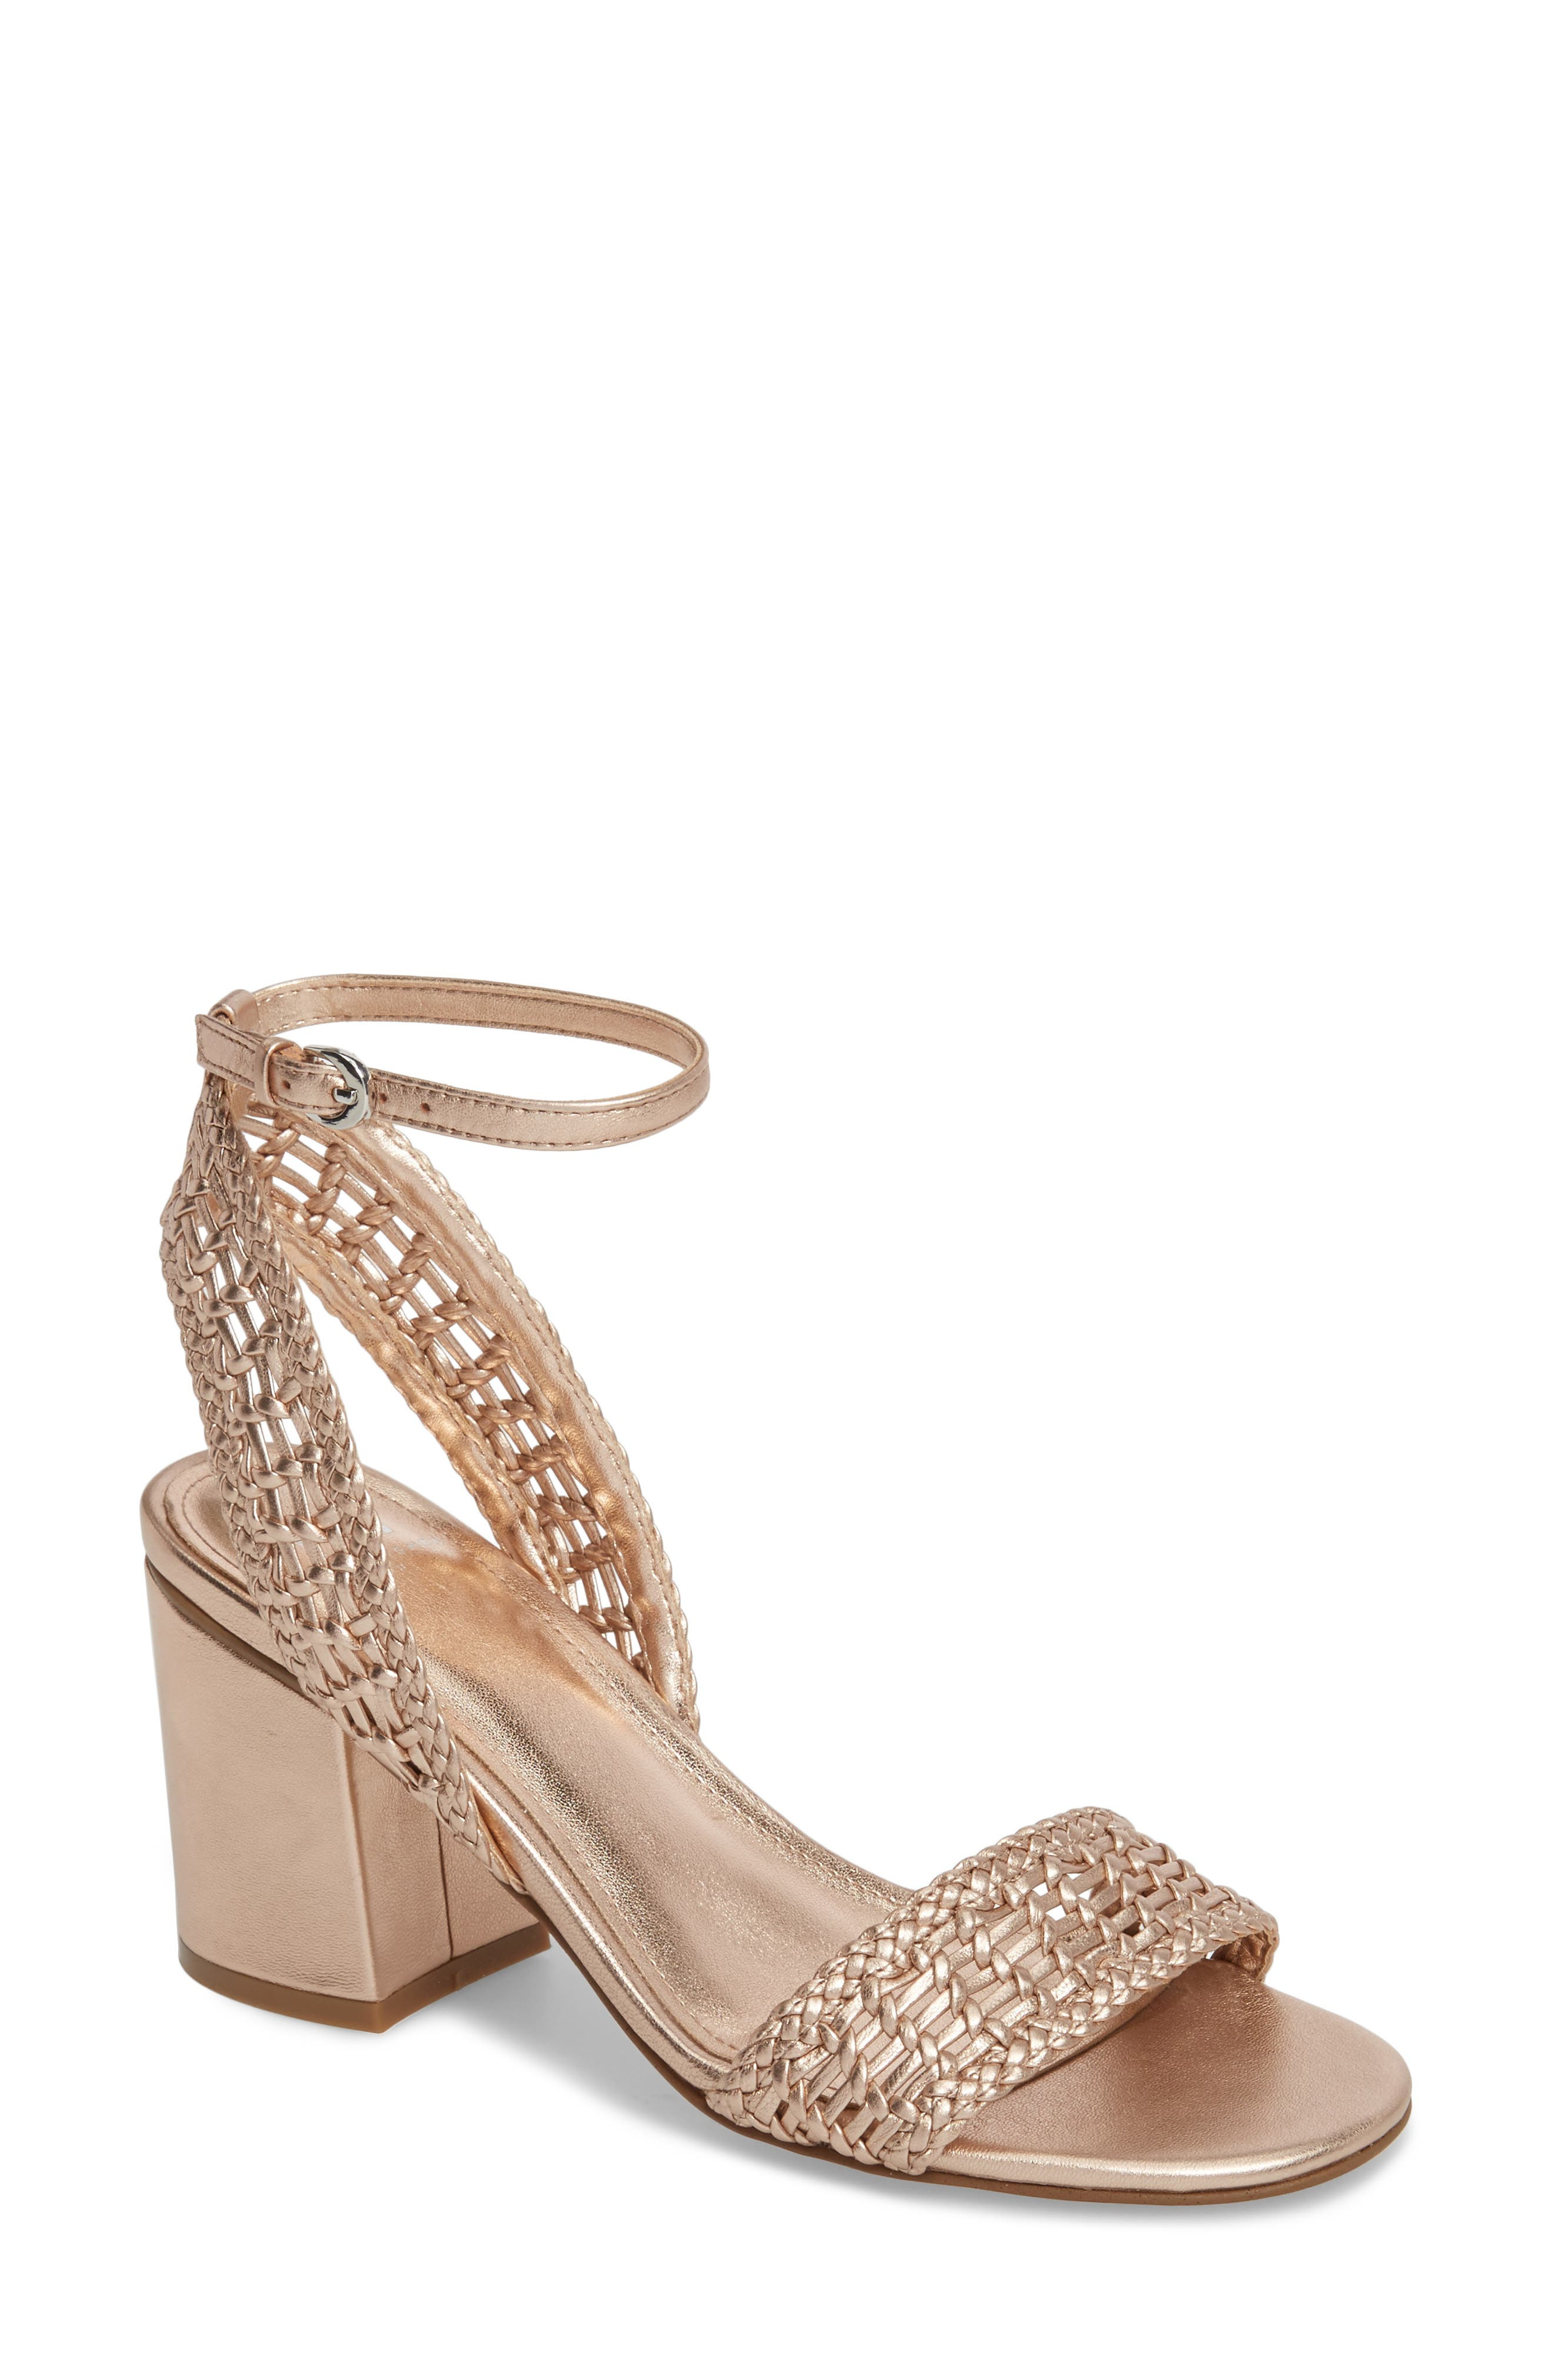 Main Image - Marc Fisher LTD Amere Ankle Strap Sandal (Women)